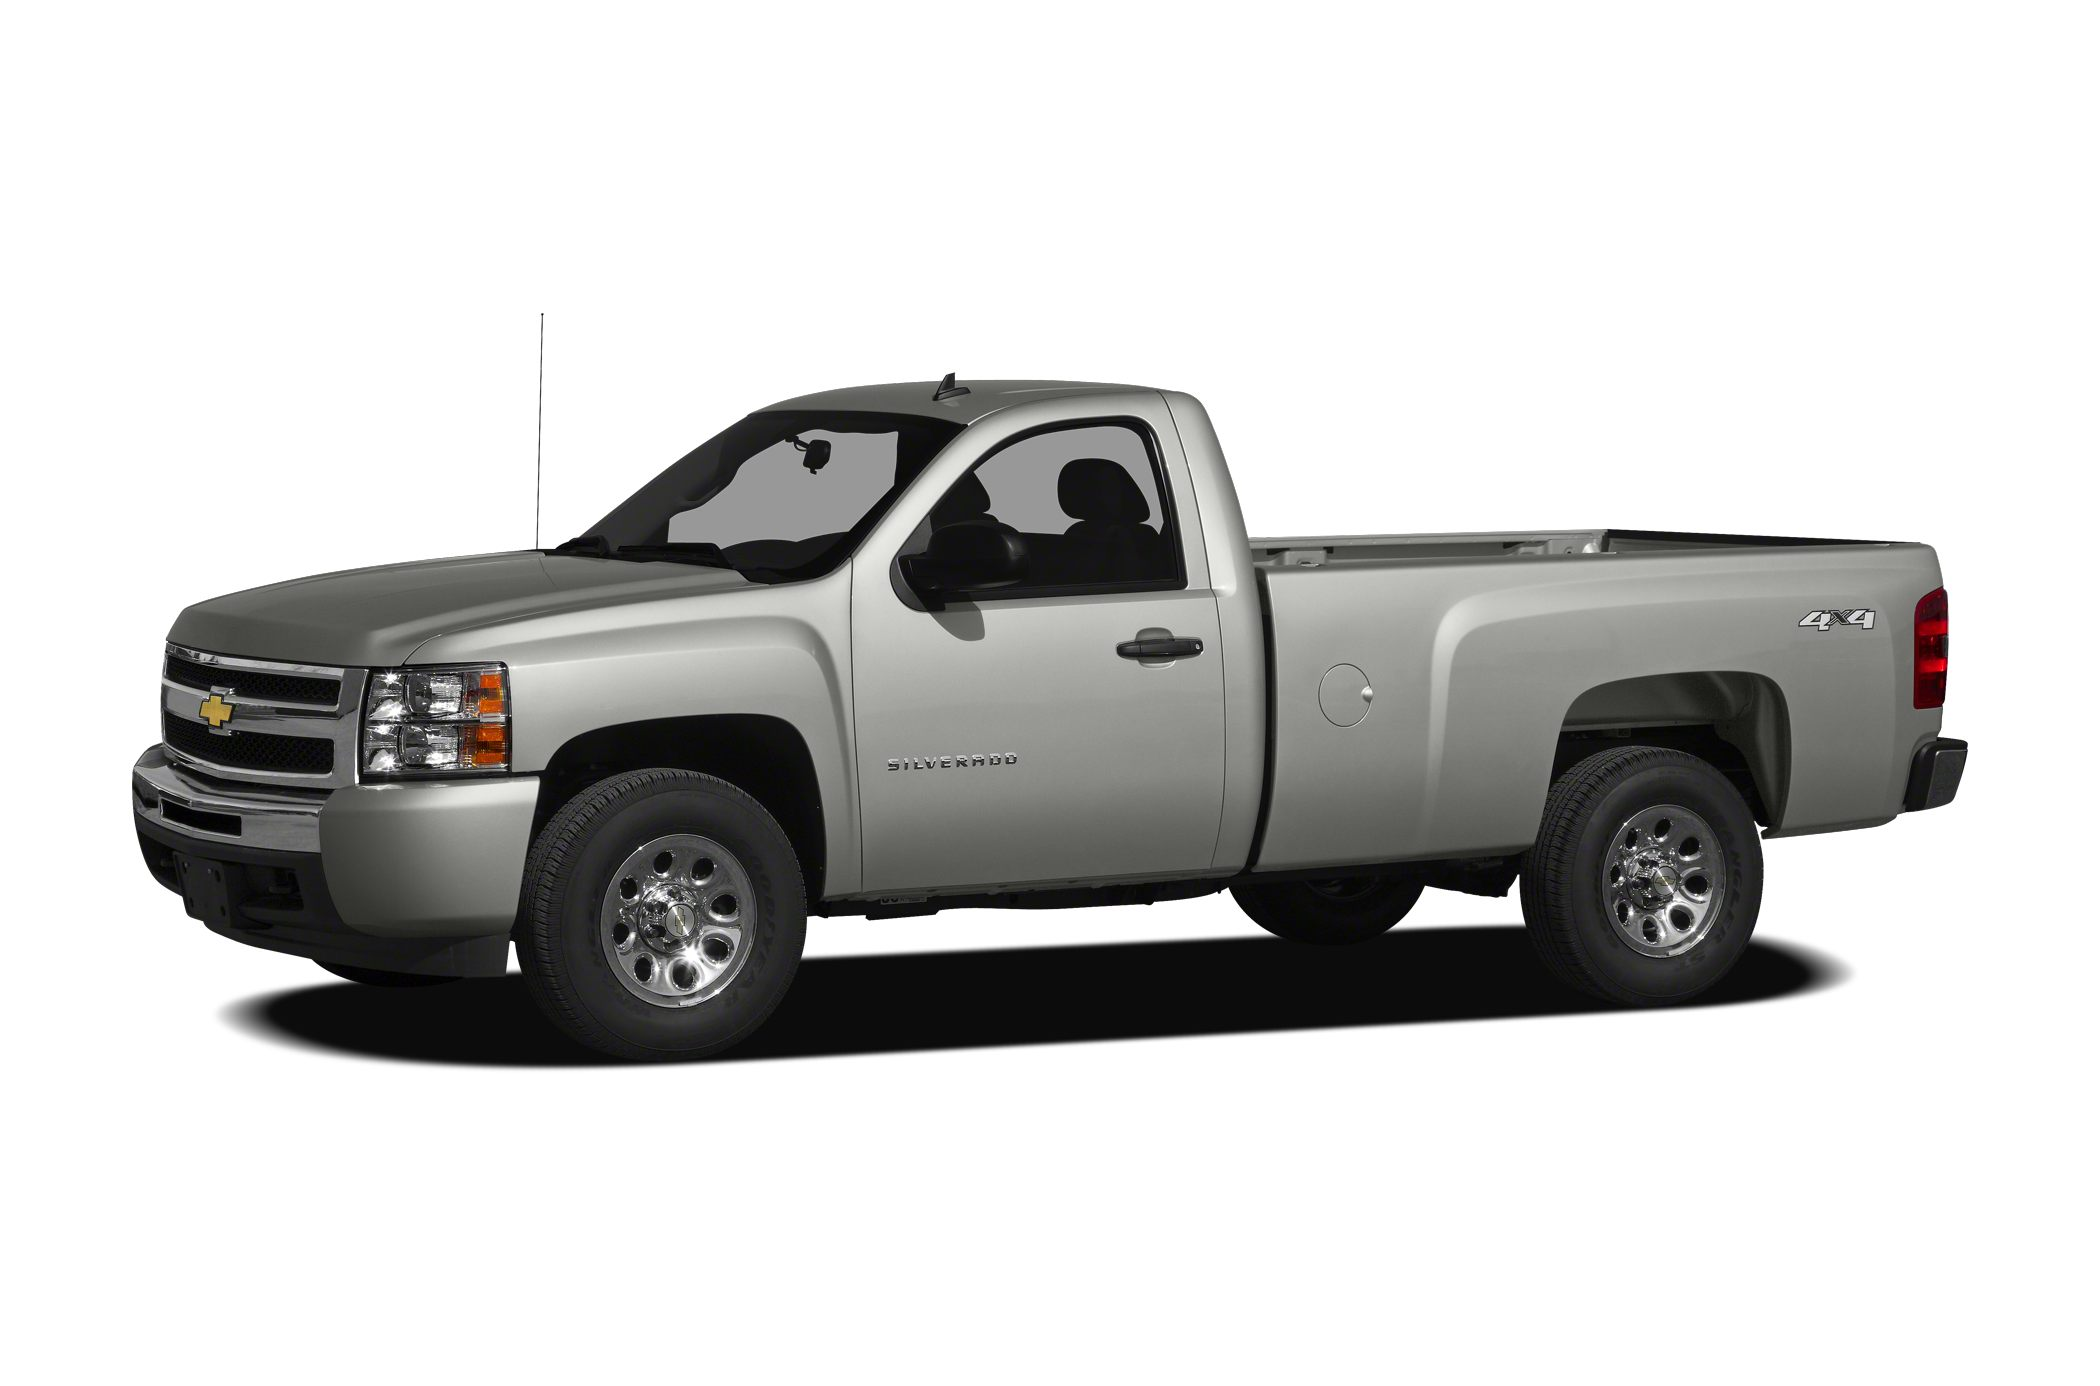 2009 Chevrolet Silverado 1500 Work Truck Regular Cab Pickup for sale in Butte for $15,962 with 62,295 miles.